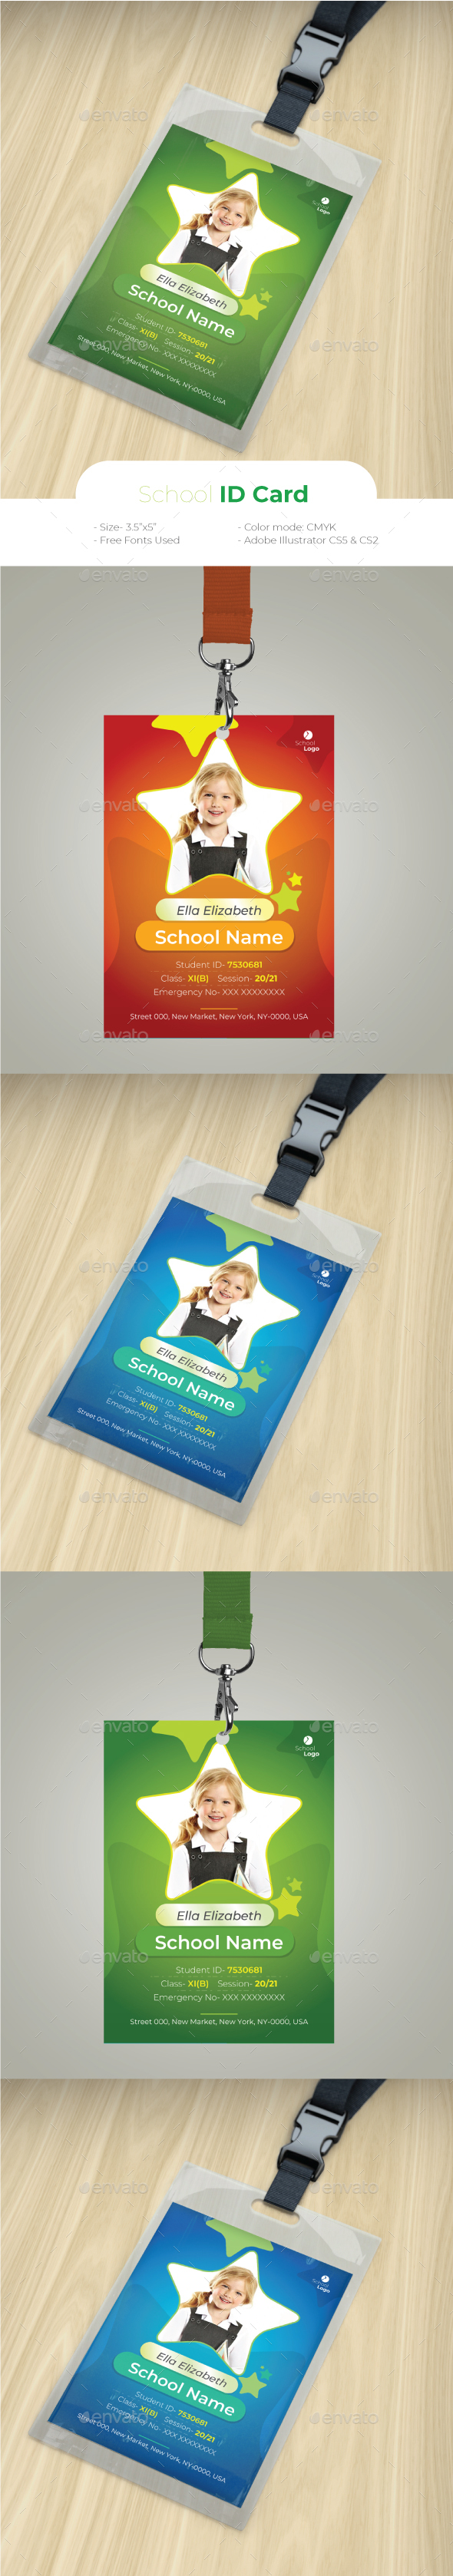 School ID Card - Miscellaneous Print Templates